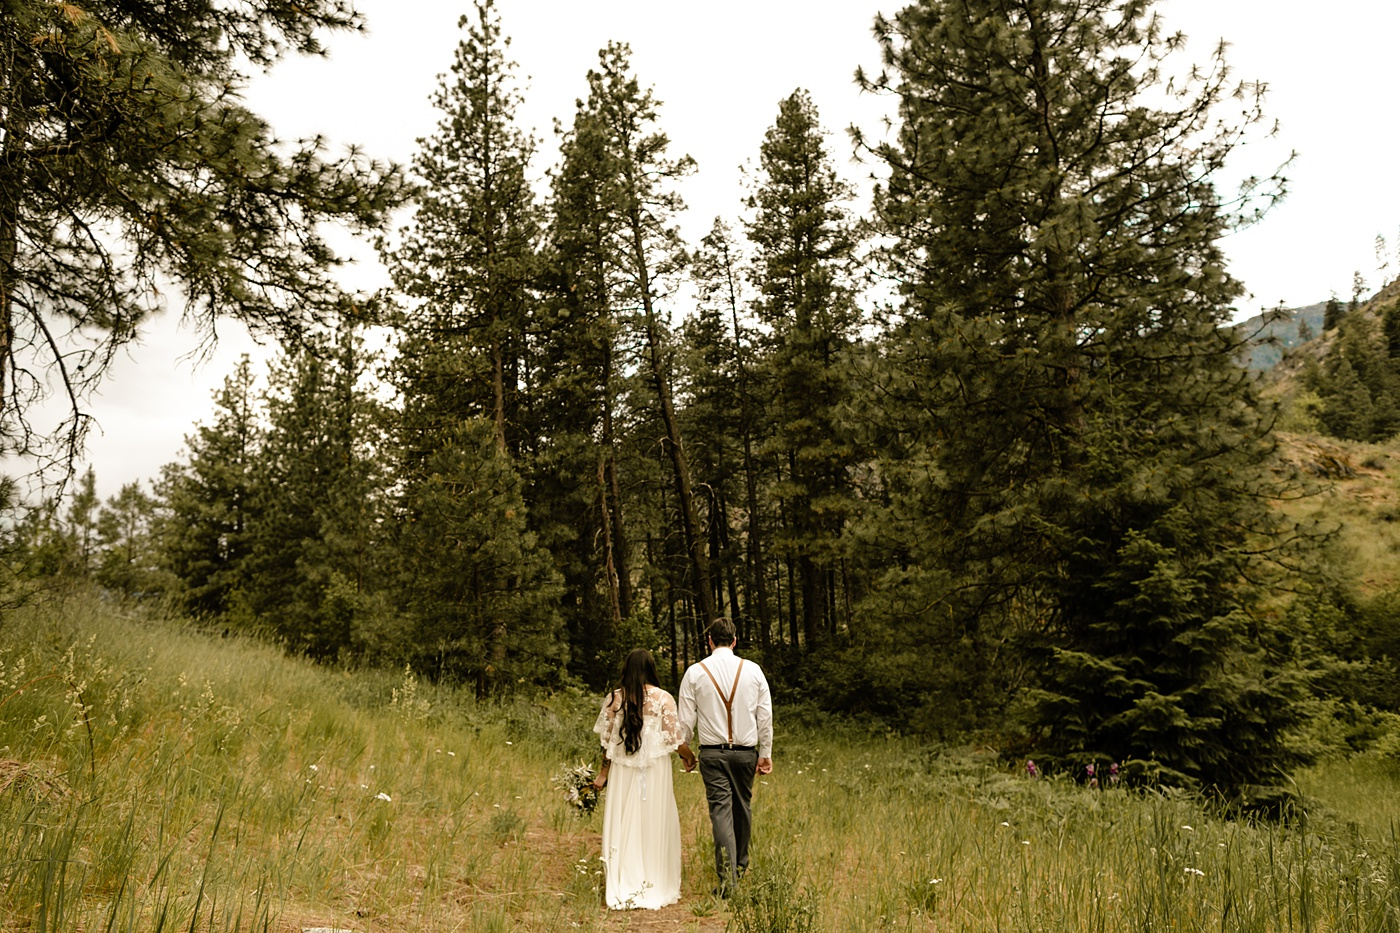 wedding ceremony in the woods, washington elopement photographer